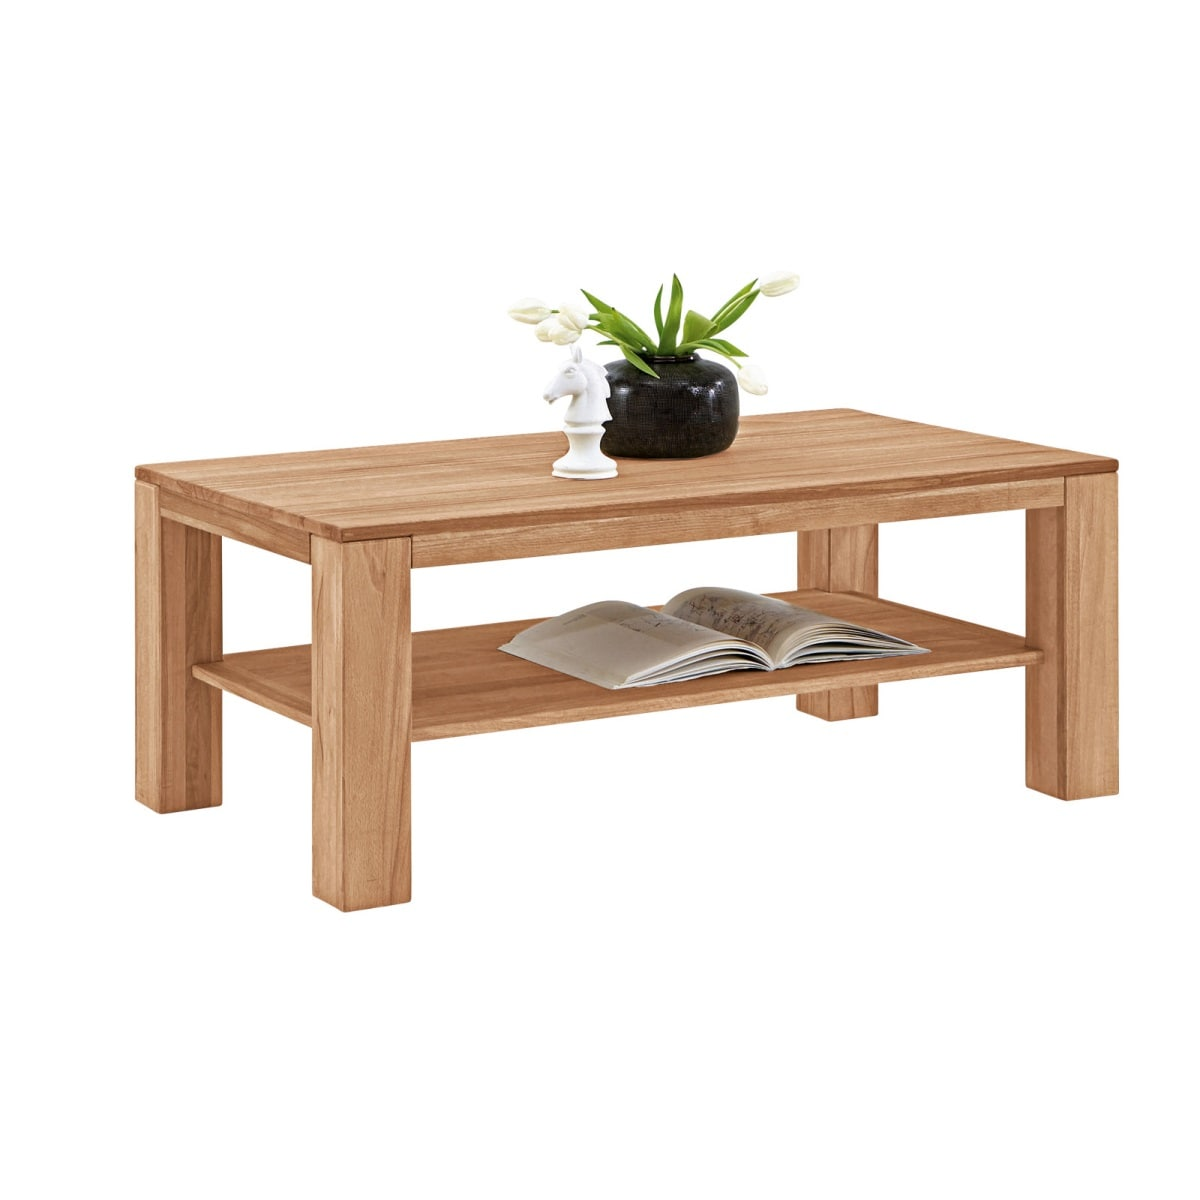 65 Cm Hoch. Simple Clp Nachttisch Kimo Ca X Cm Hhe With 65 Cm Hoch. Affordable Cm Hoch With 65 ...